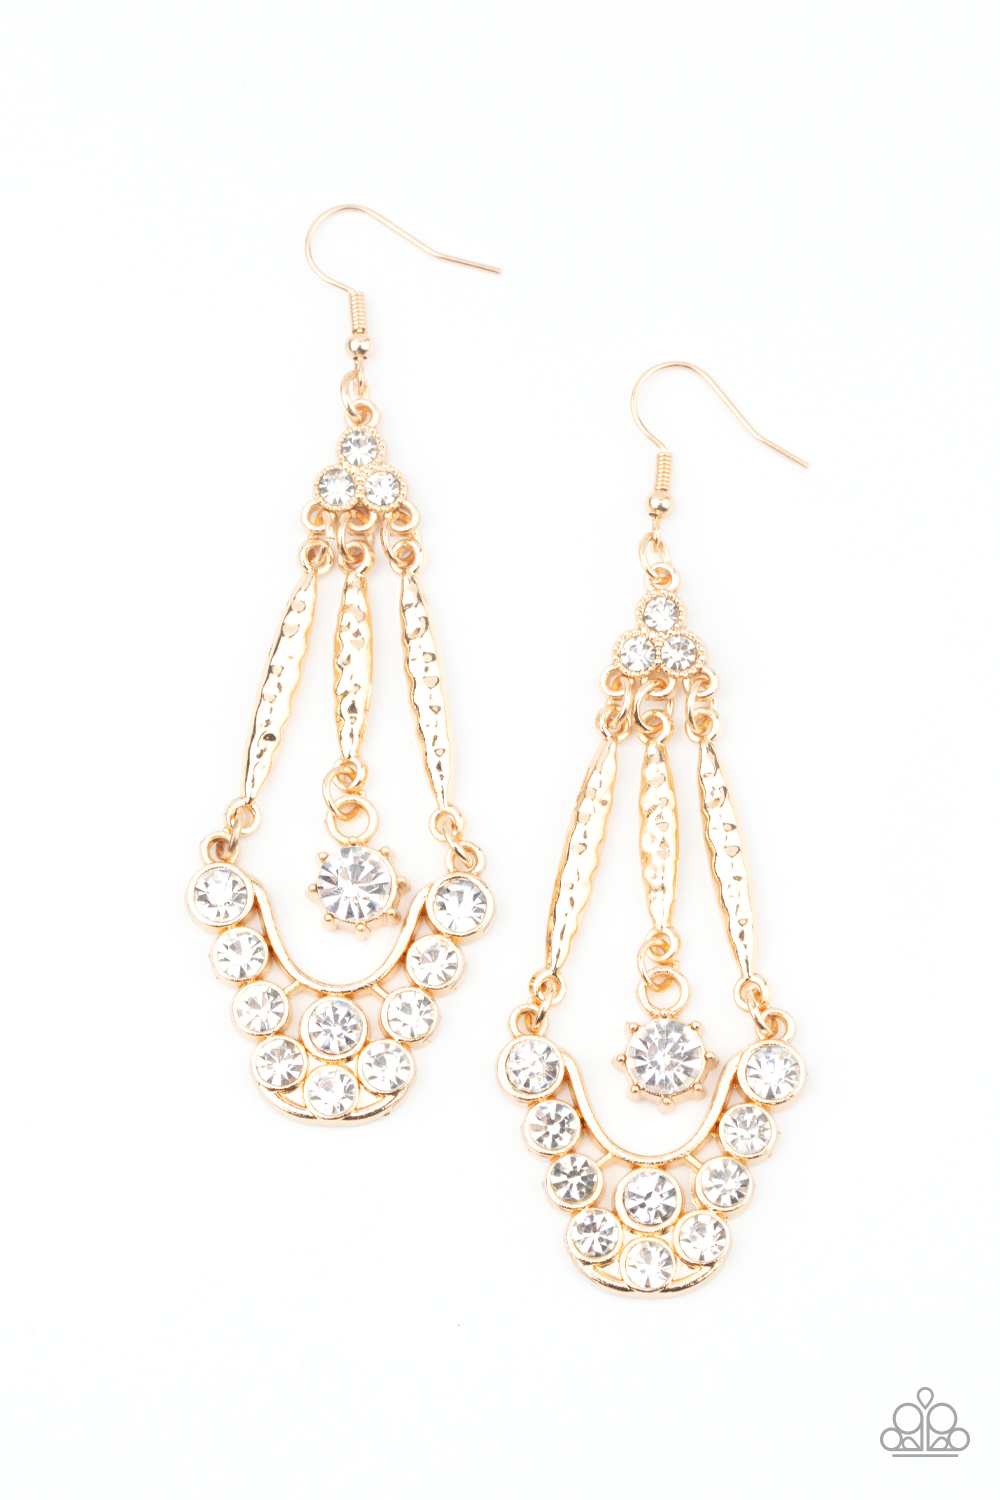 Paparazzi Accessories:  High-Ranking Radiance - Gold (118)